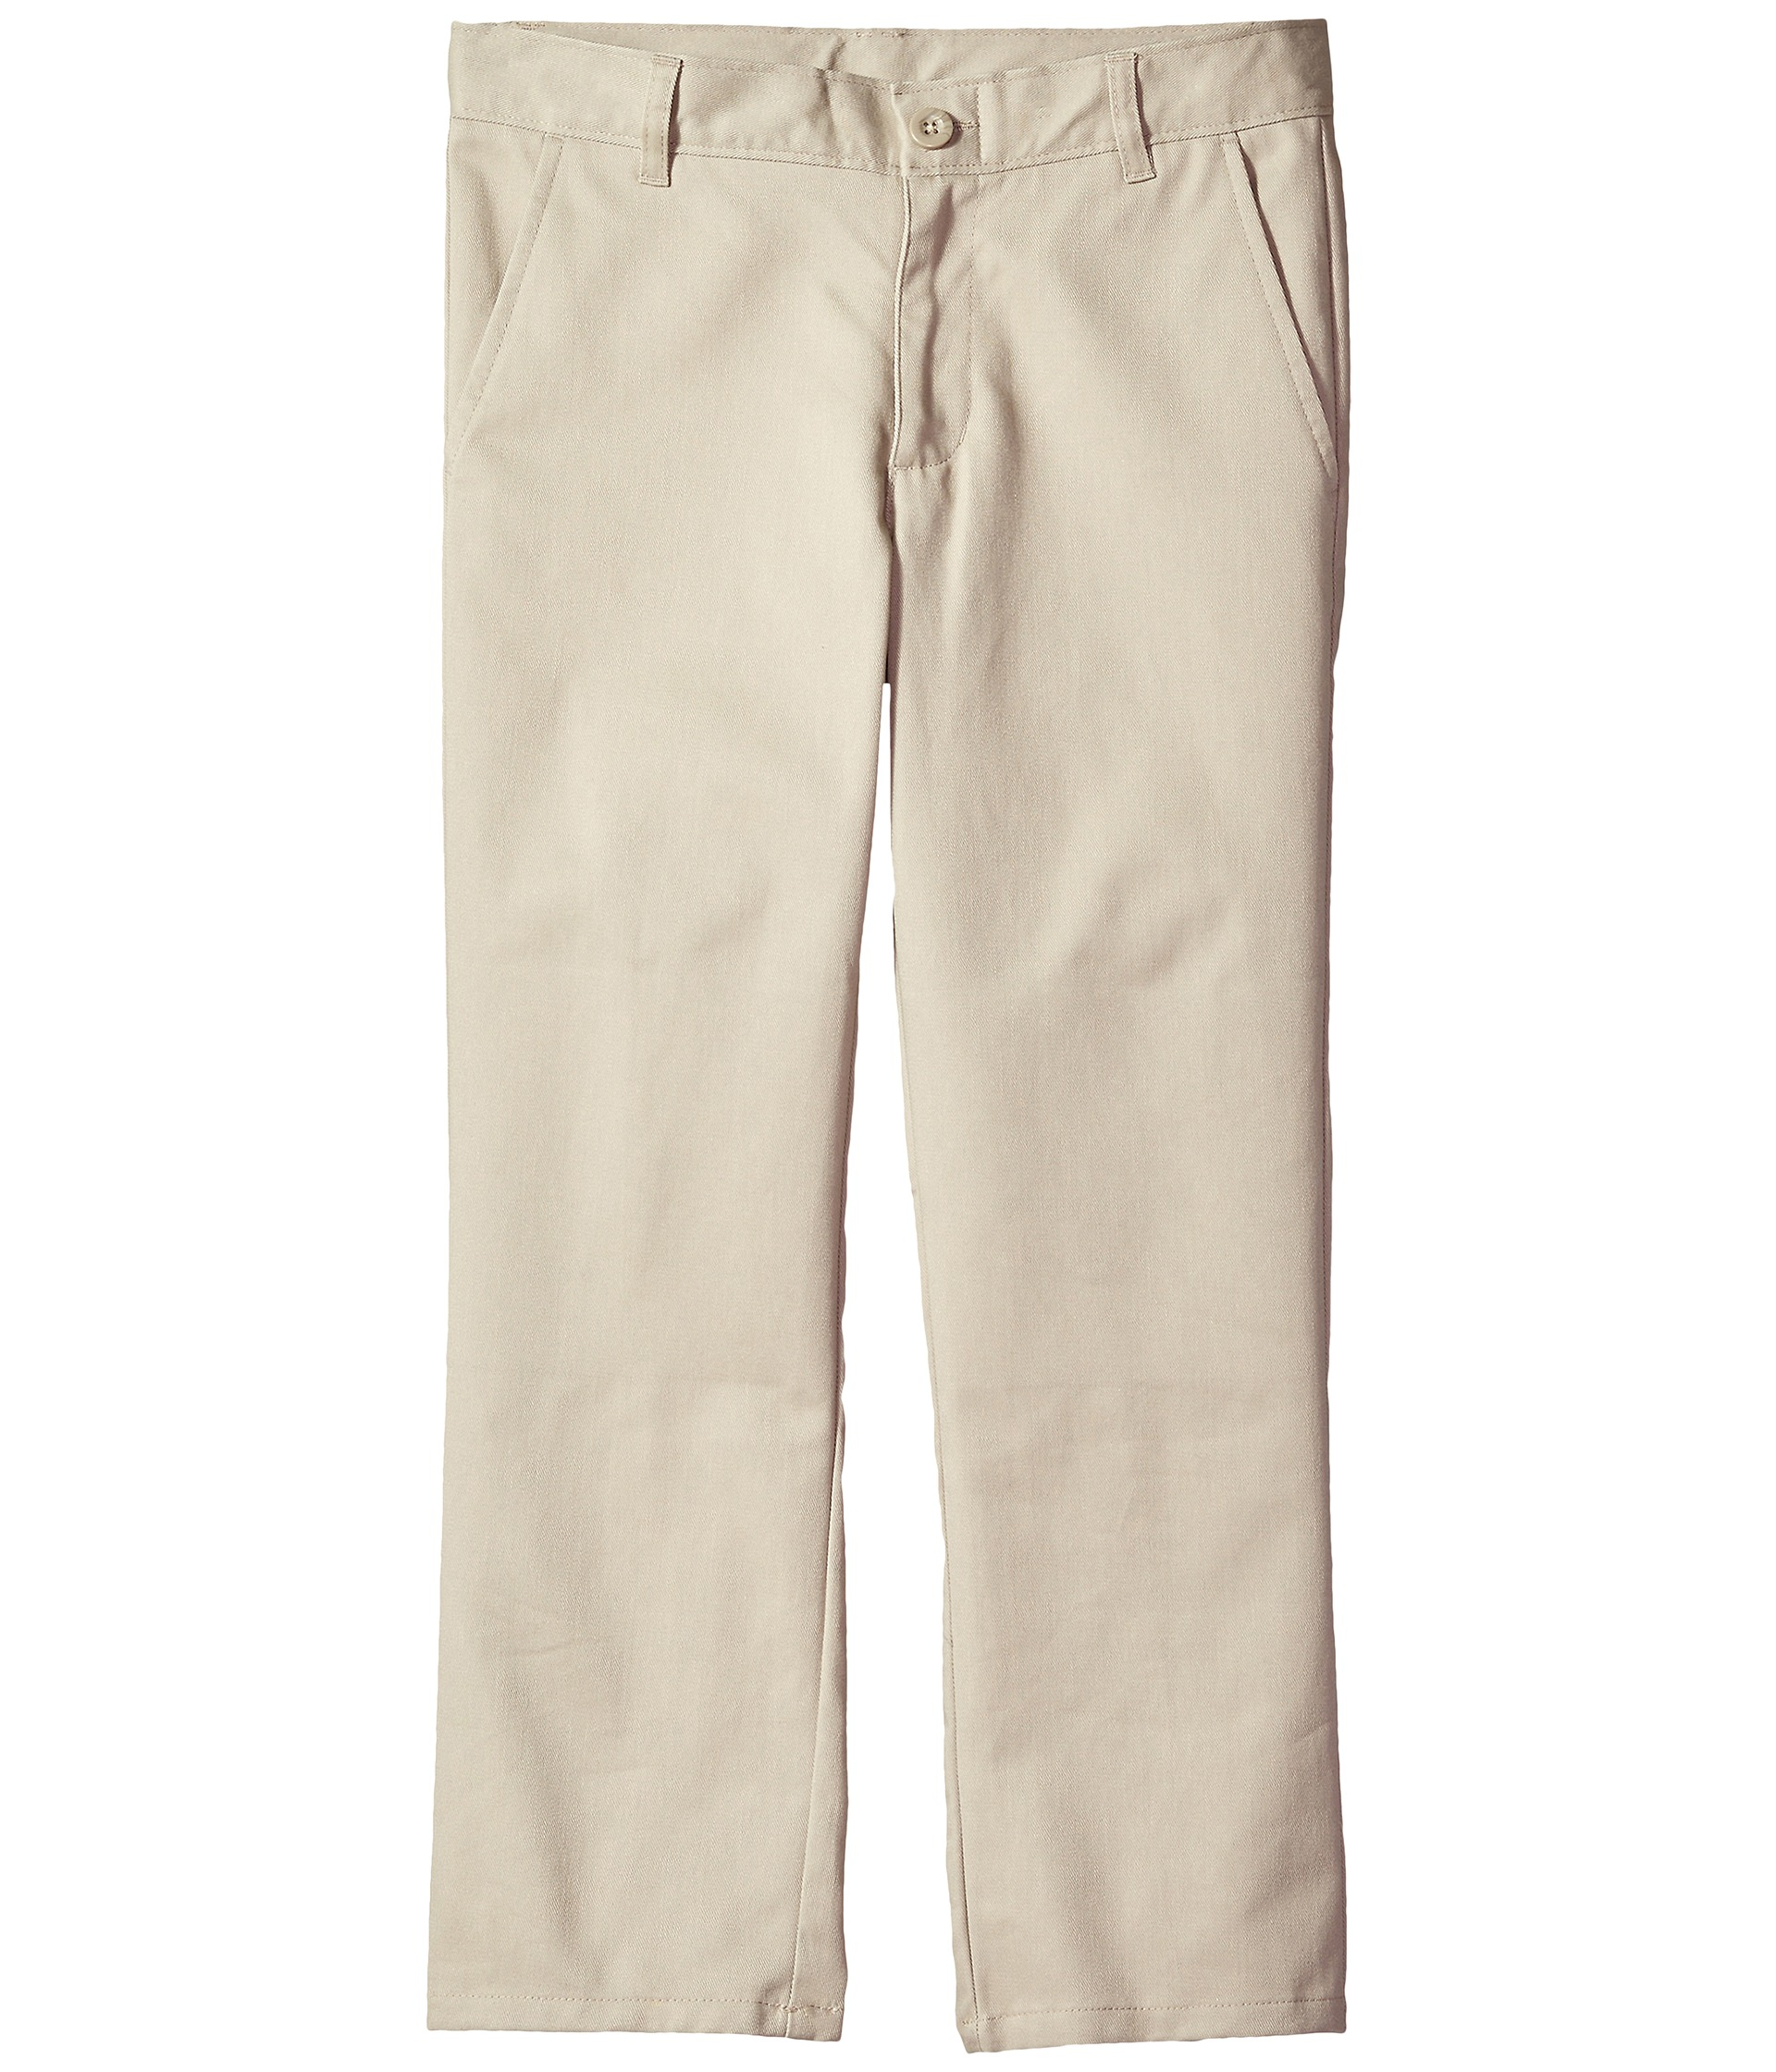 Product Features Traditional-fit pant featuring side seam pockets and welted back pockets.